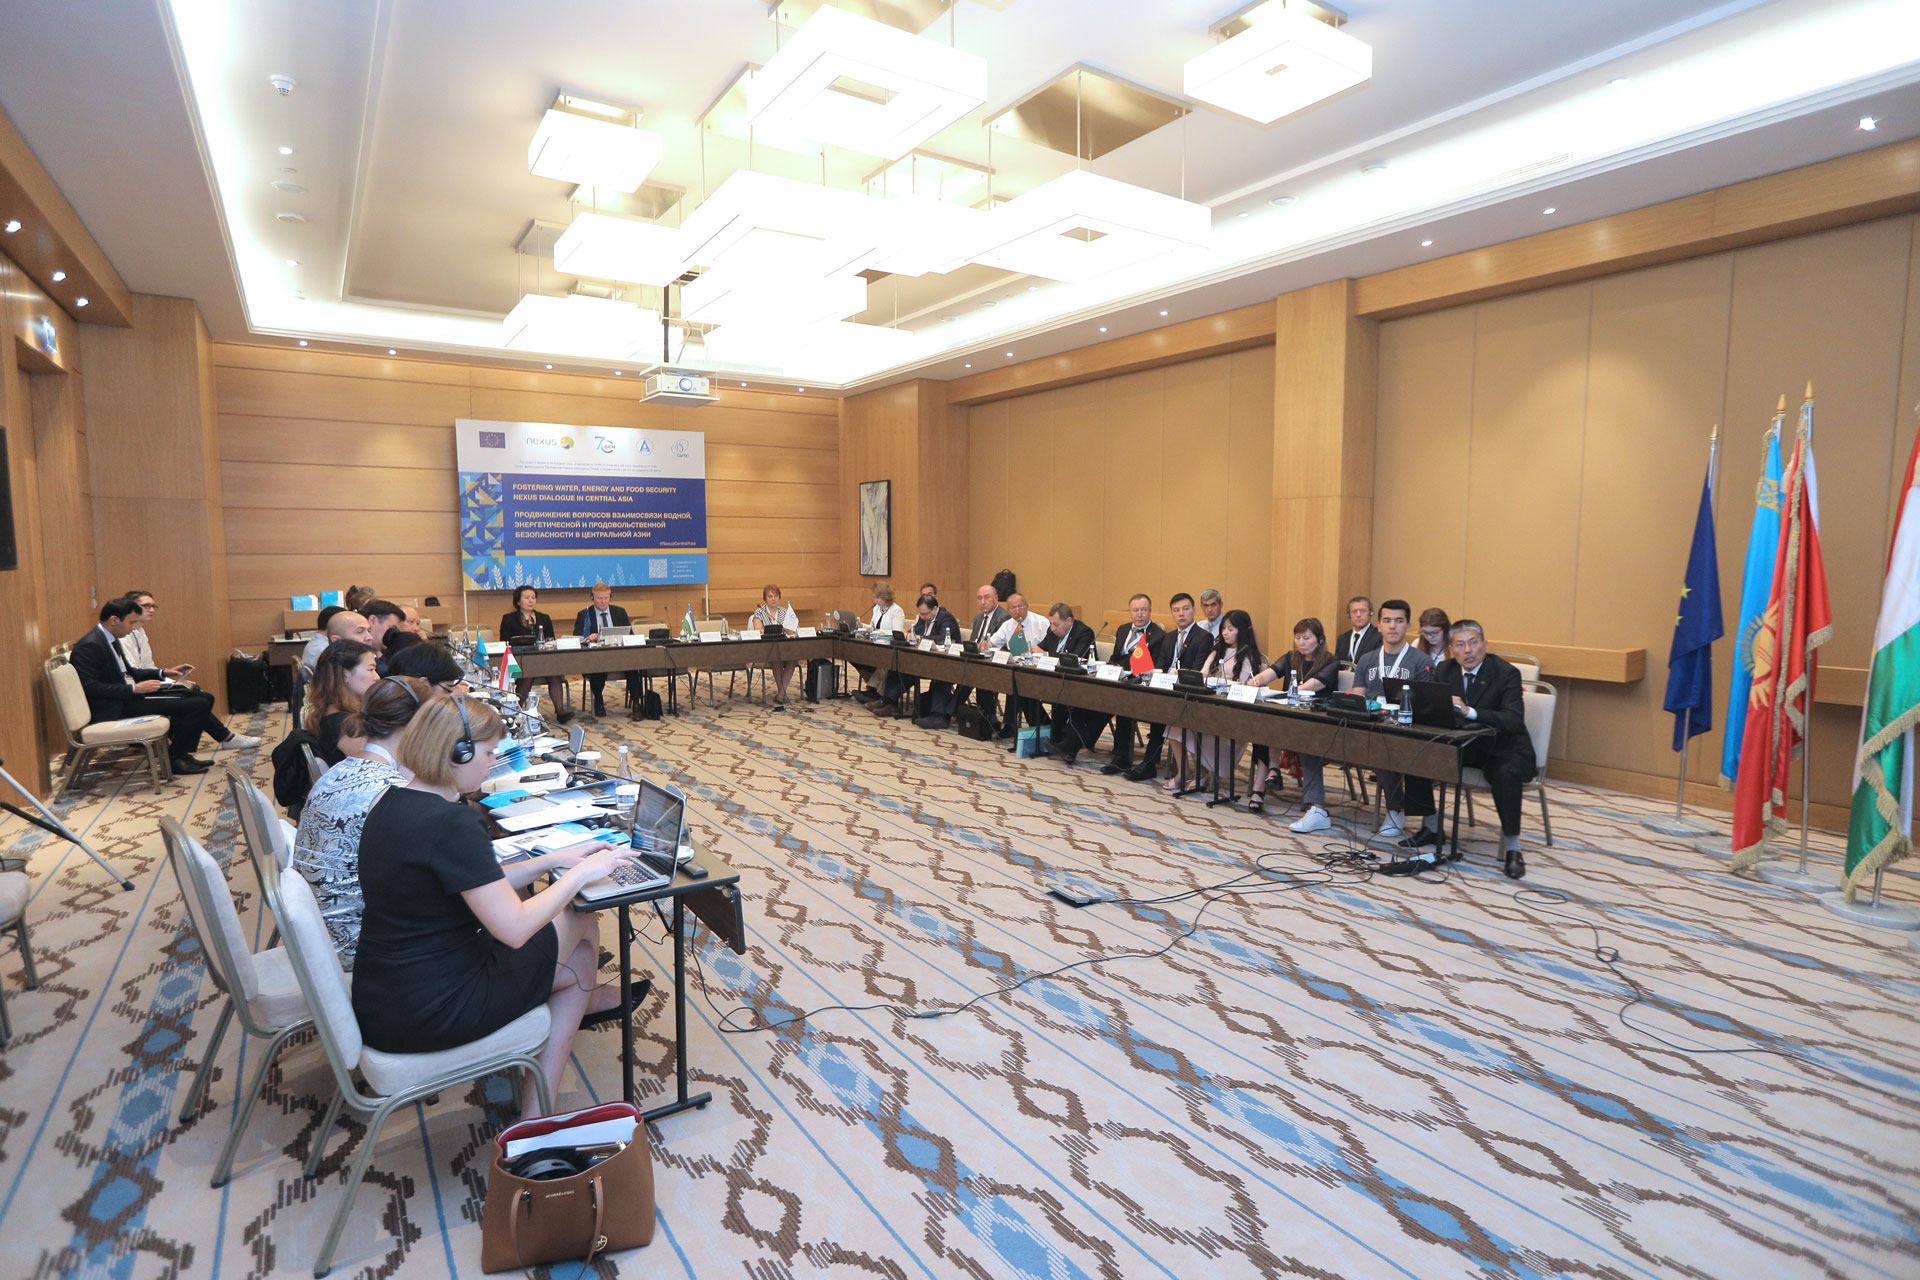 Investments to strengthen water, energy and food security in Central Asia were discussed at CAIEF 2018